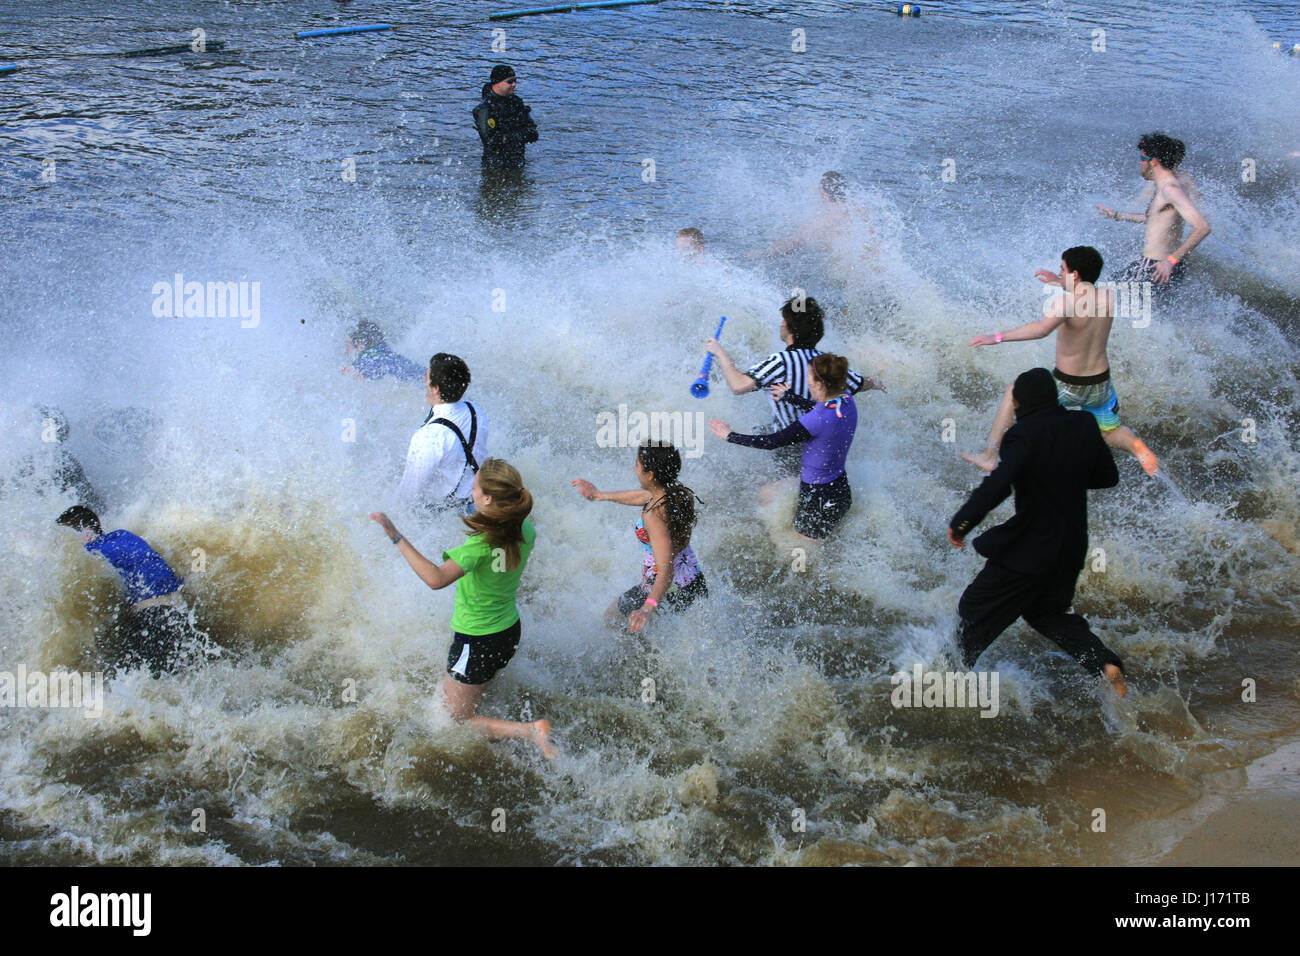 Large group of young people plunging into freezing water in Polar Plunge challenge - Stock Image